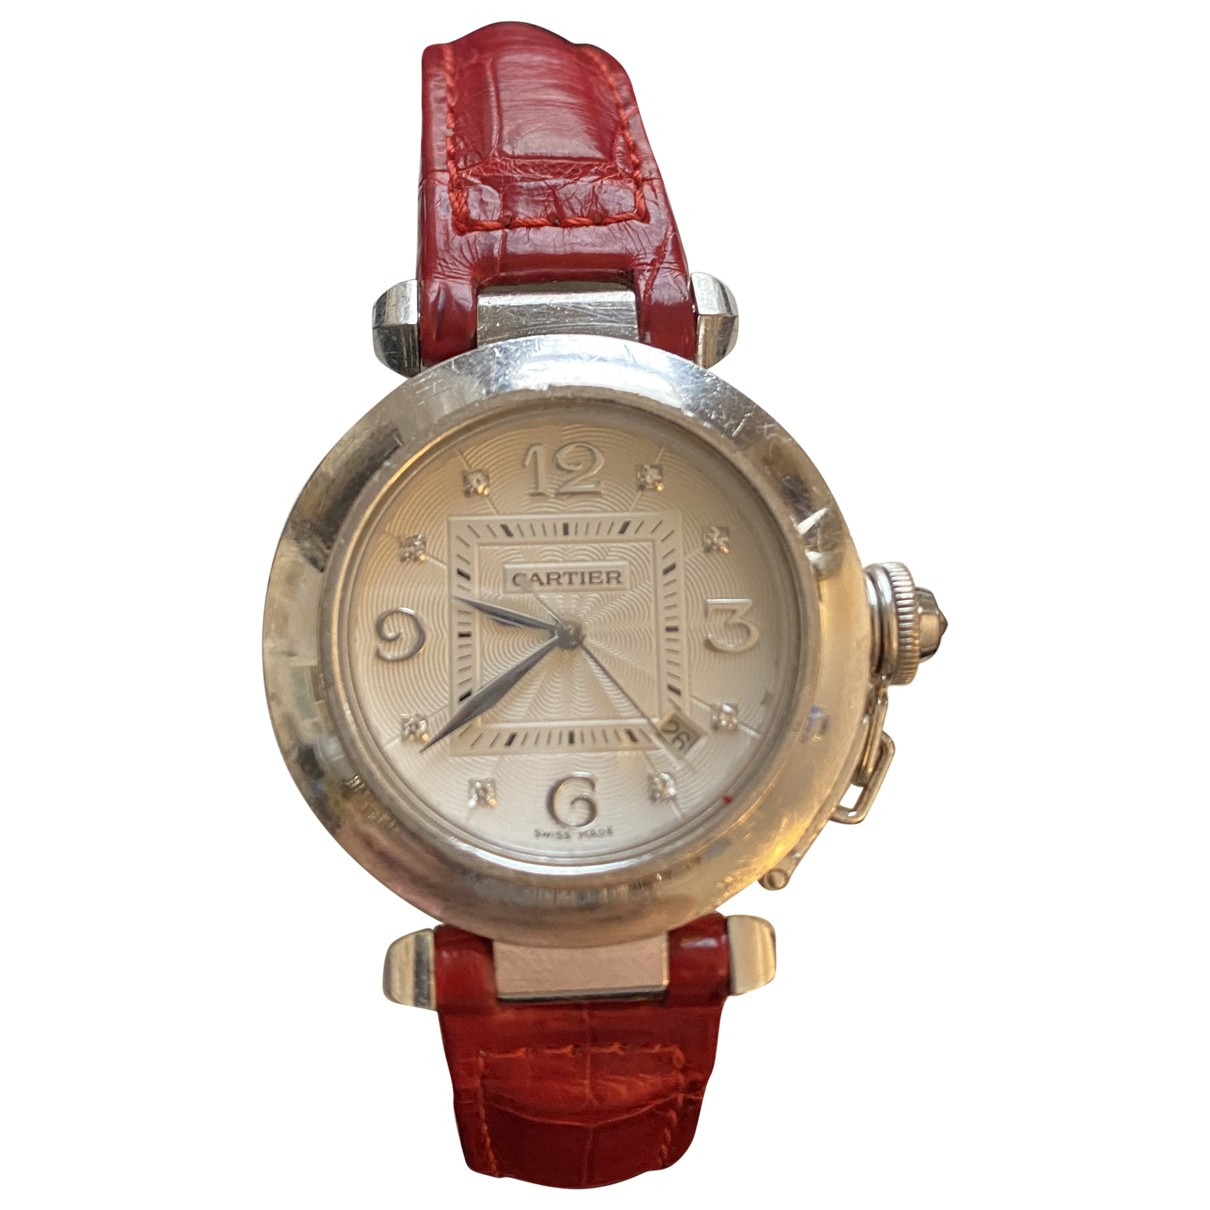 Cartier Pasha Uhr in  Rot Weissgold